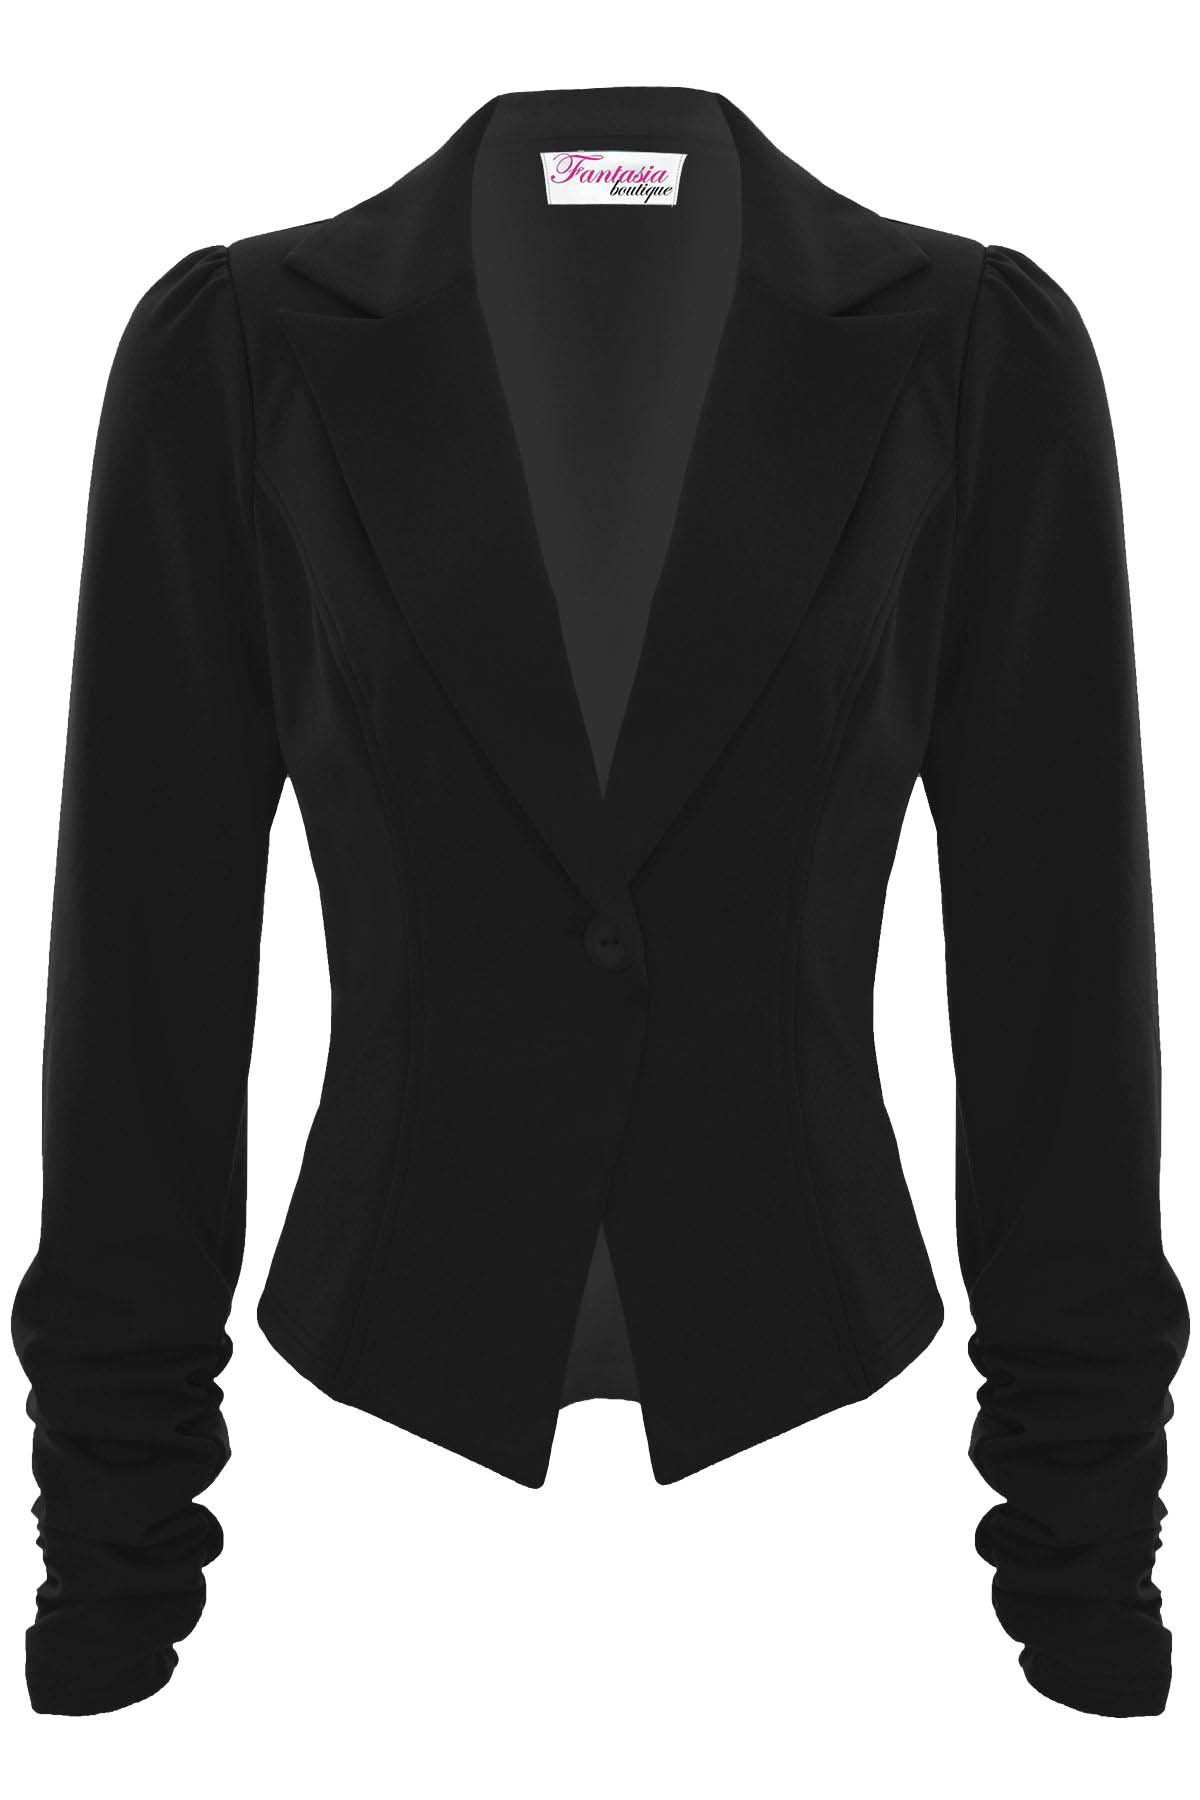 Women/'s Celeb Style Gold Button Double Breasted Fitted Blazer White AUS STOCK